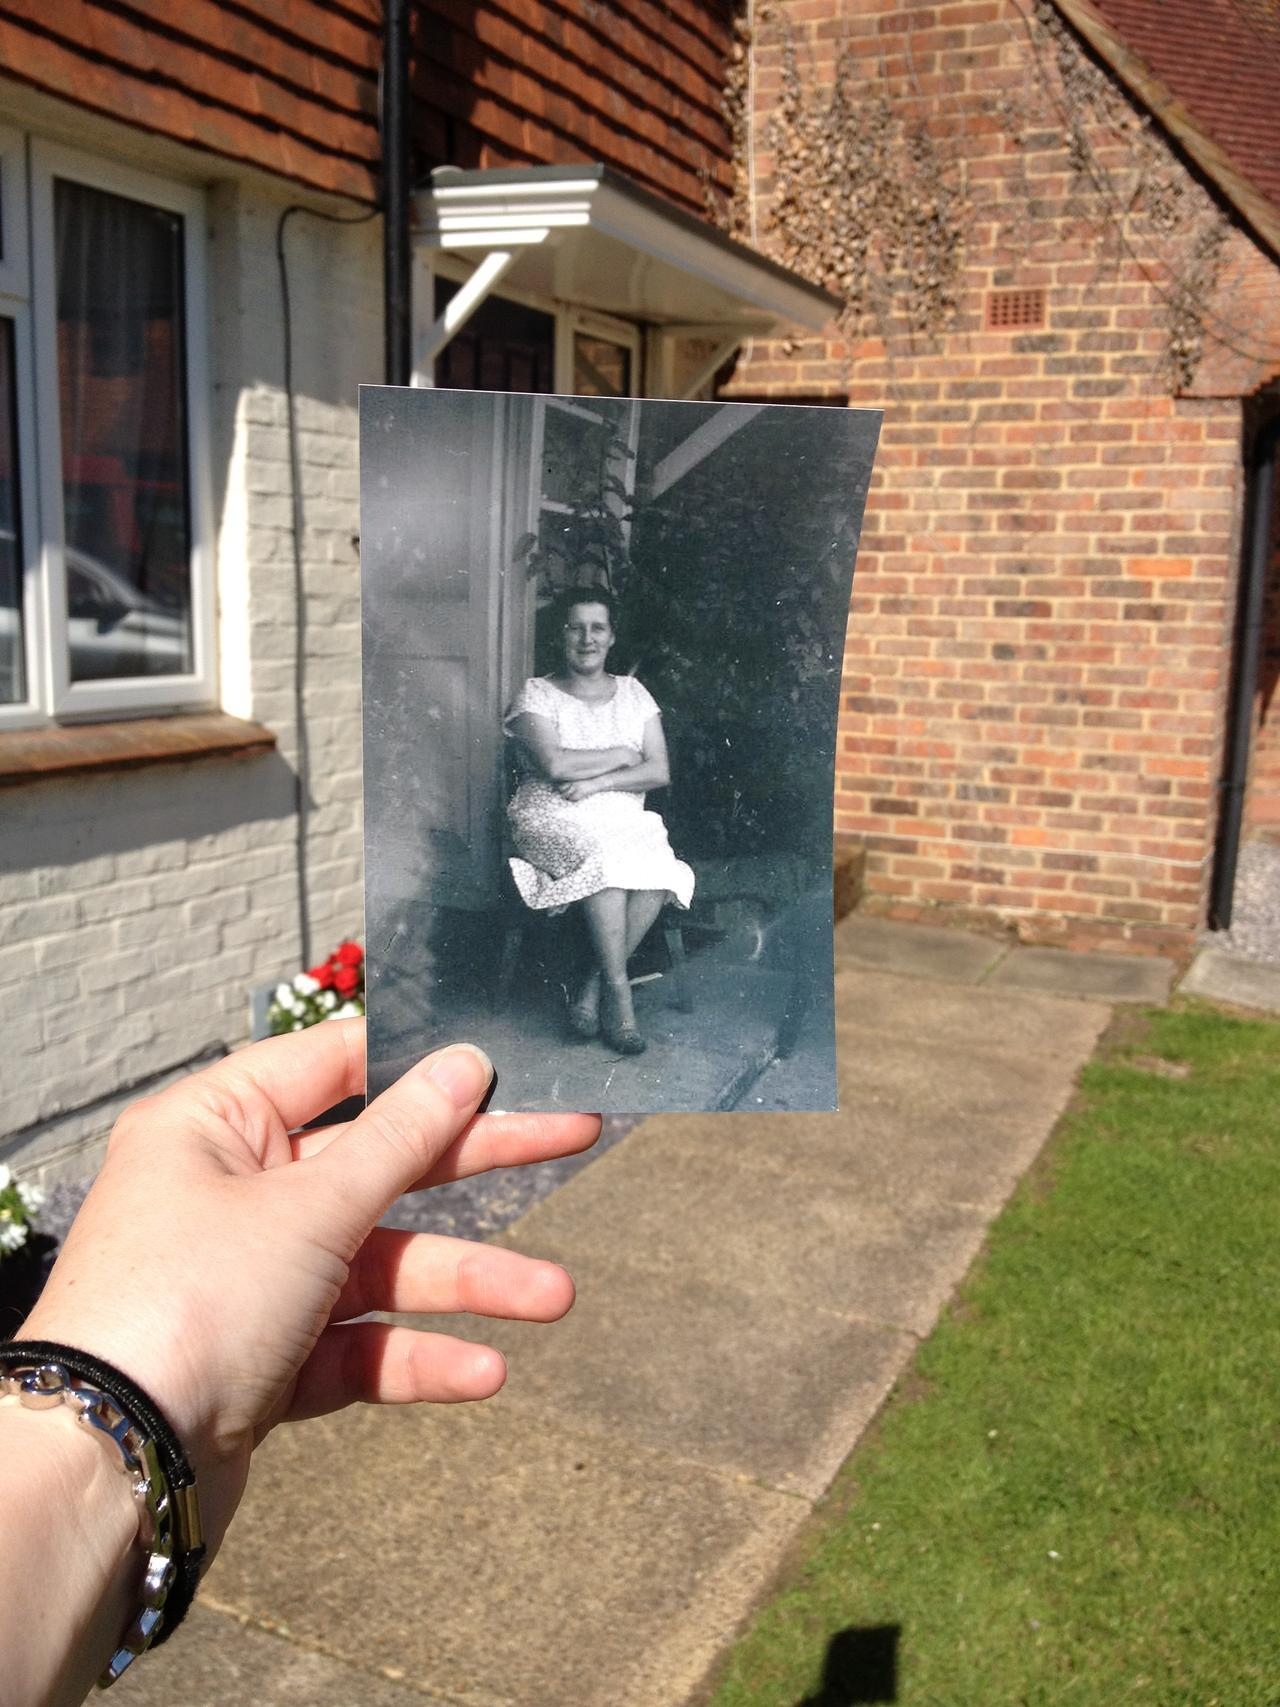 Dear Photograph, This was her home for over fifty years and now the time has come when she won't be coming home anymore. New people may live there now but to me this will forever and always be Nan's house. Love &miss you Nan, Penny